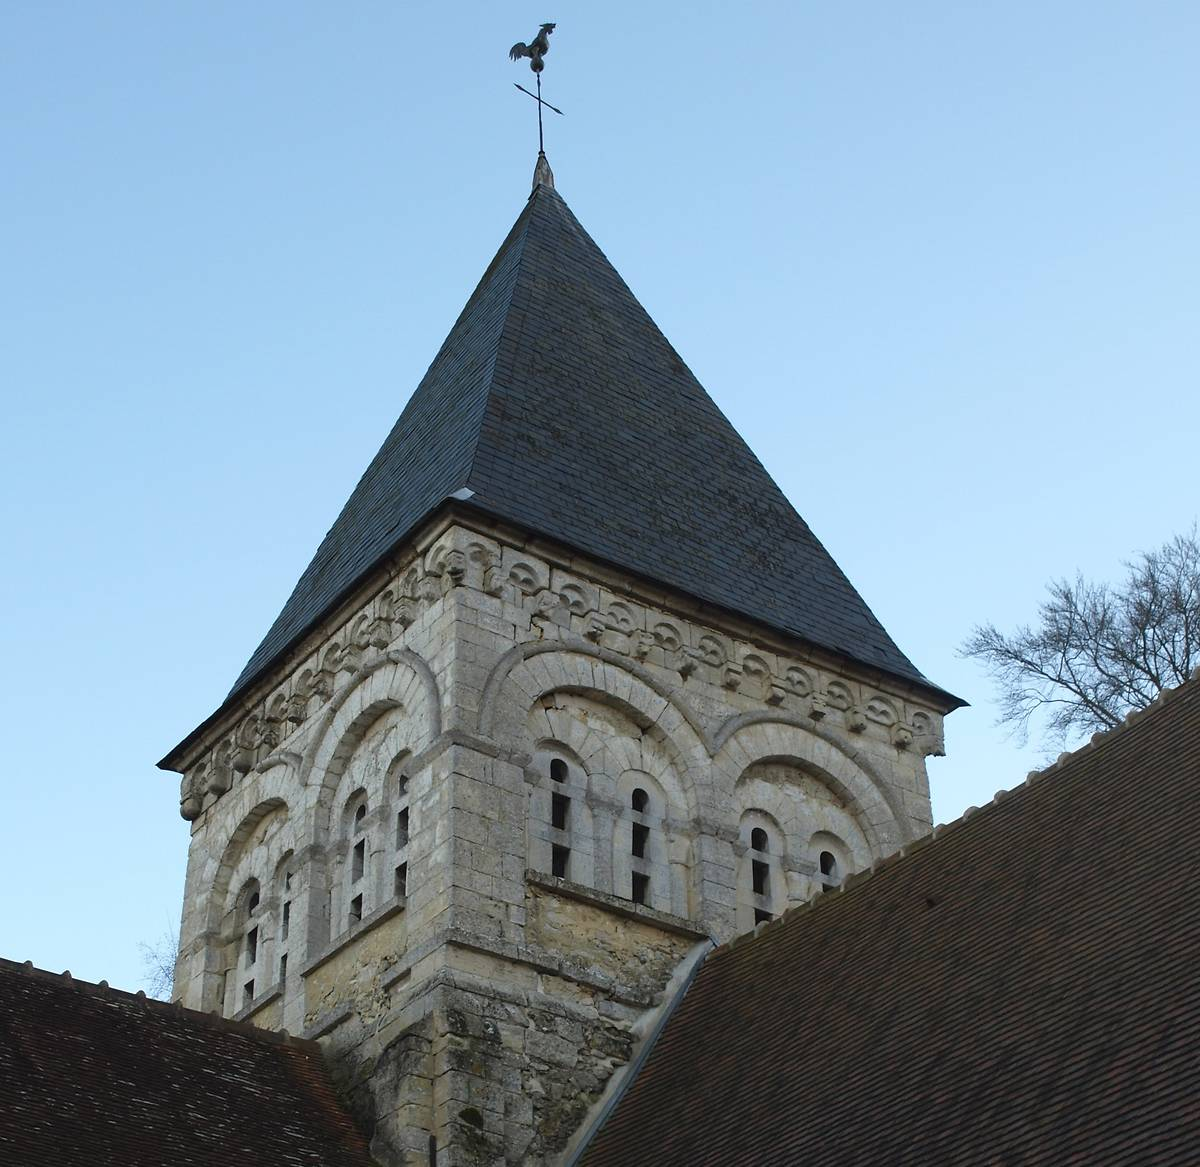 CLOCHER DE L'EGLISE DE HEILLES